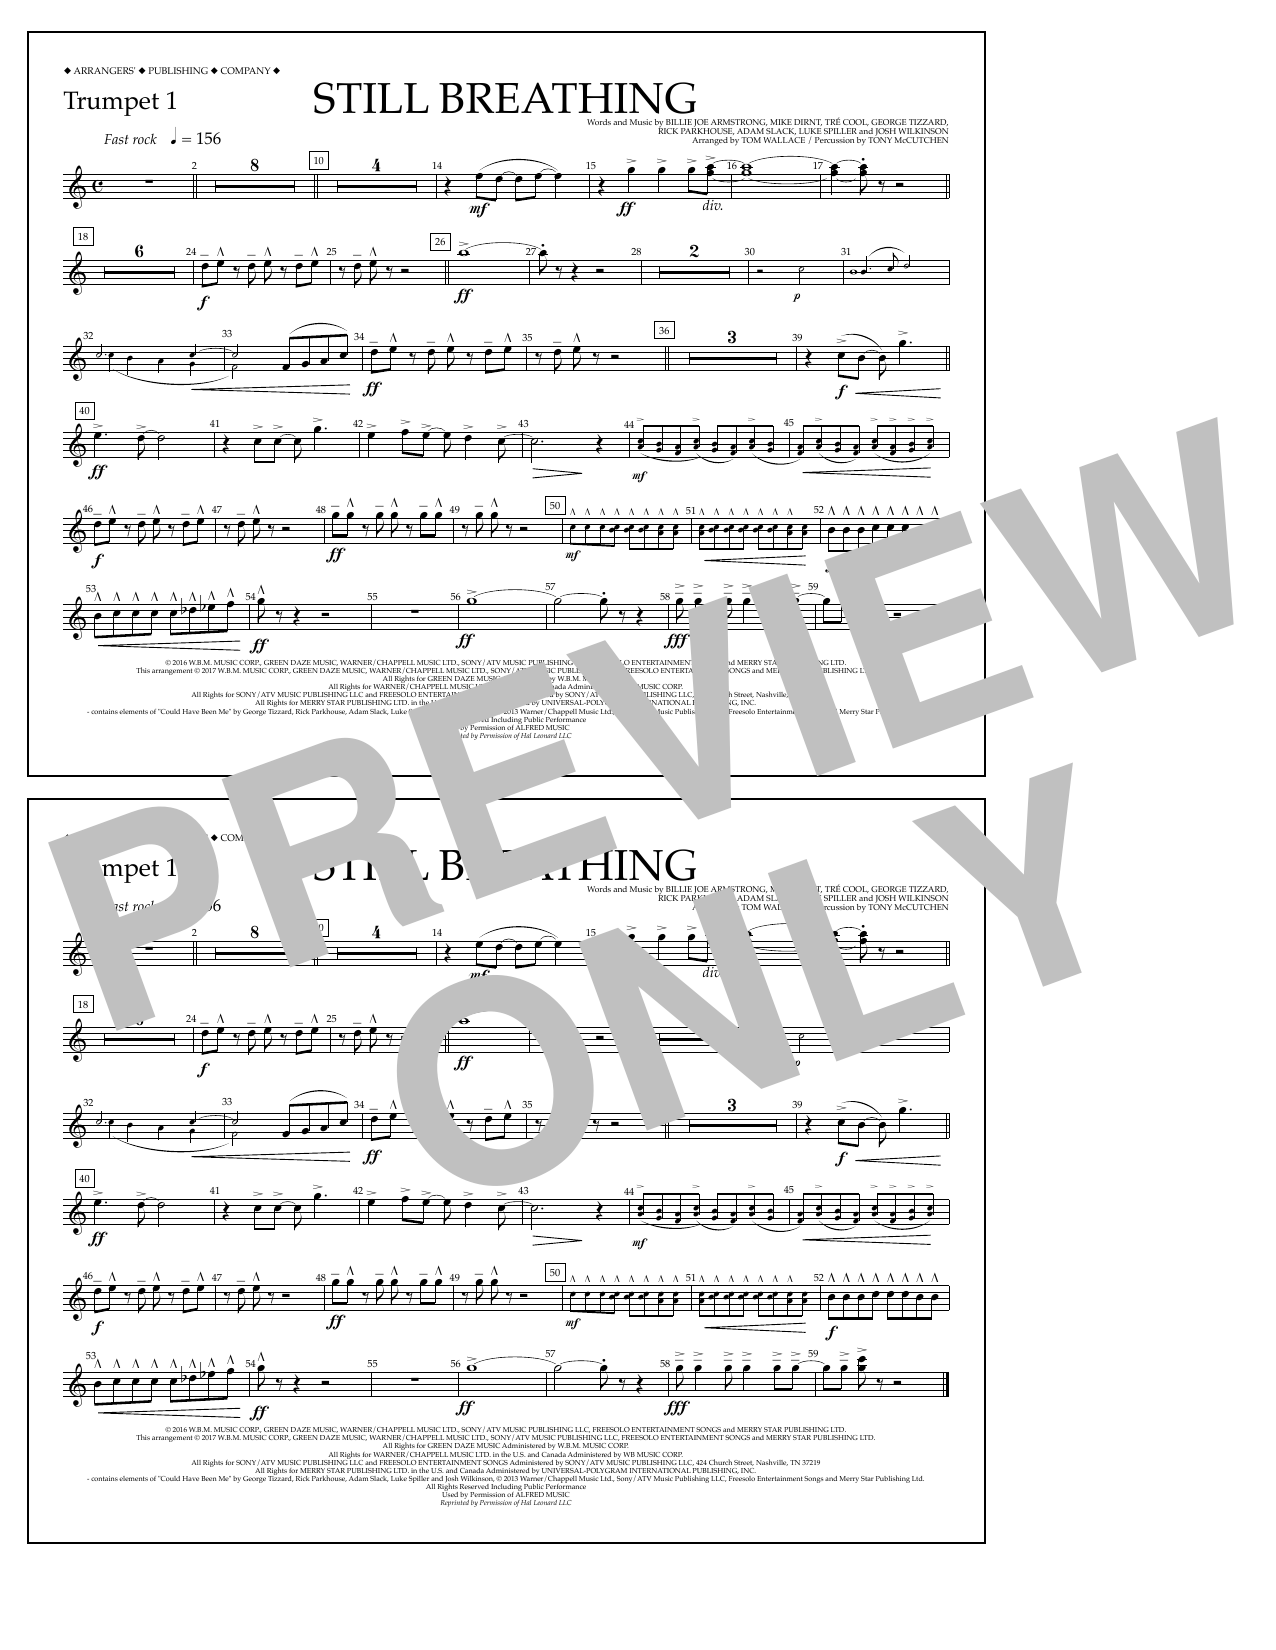 Still Breathing - Trumpet 1 Sheet Music